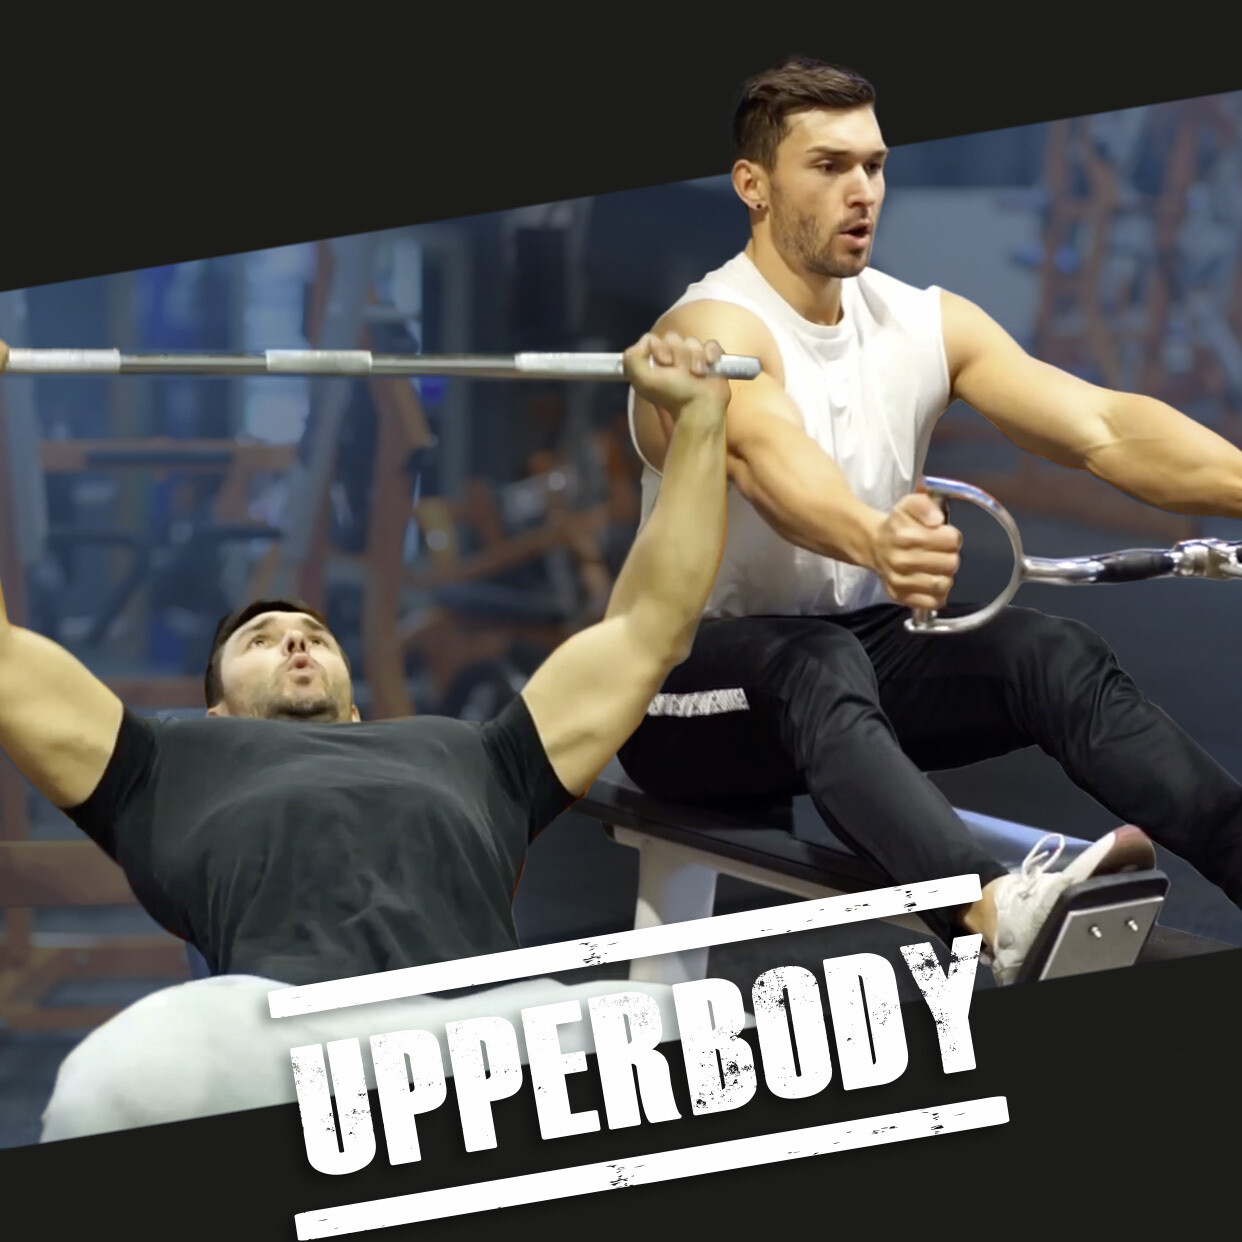 Upperbody Workout